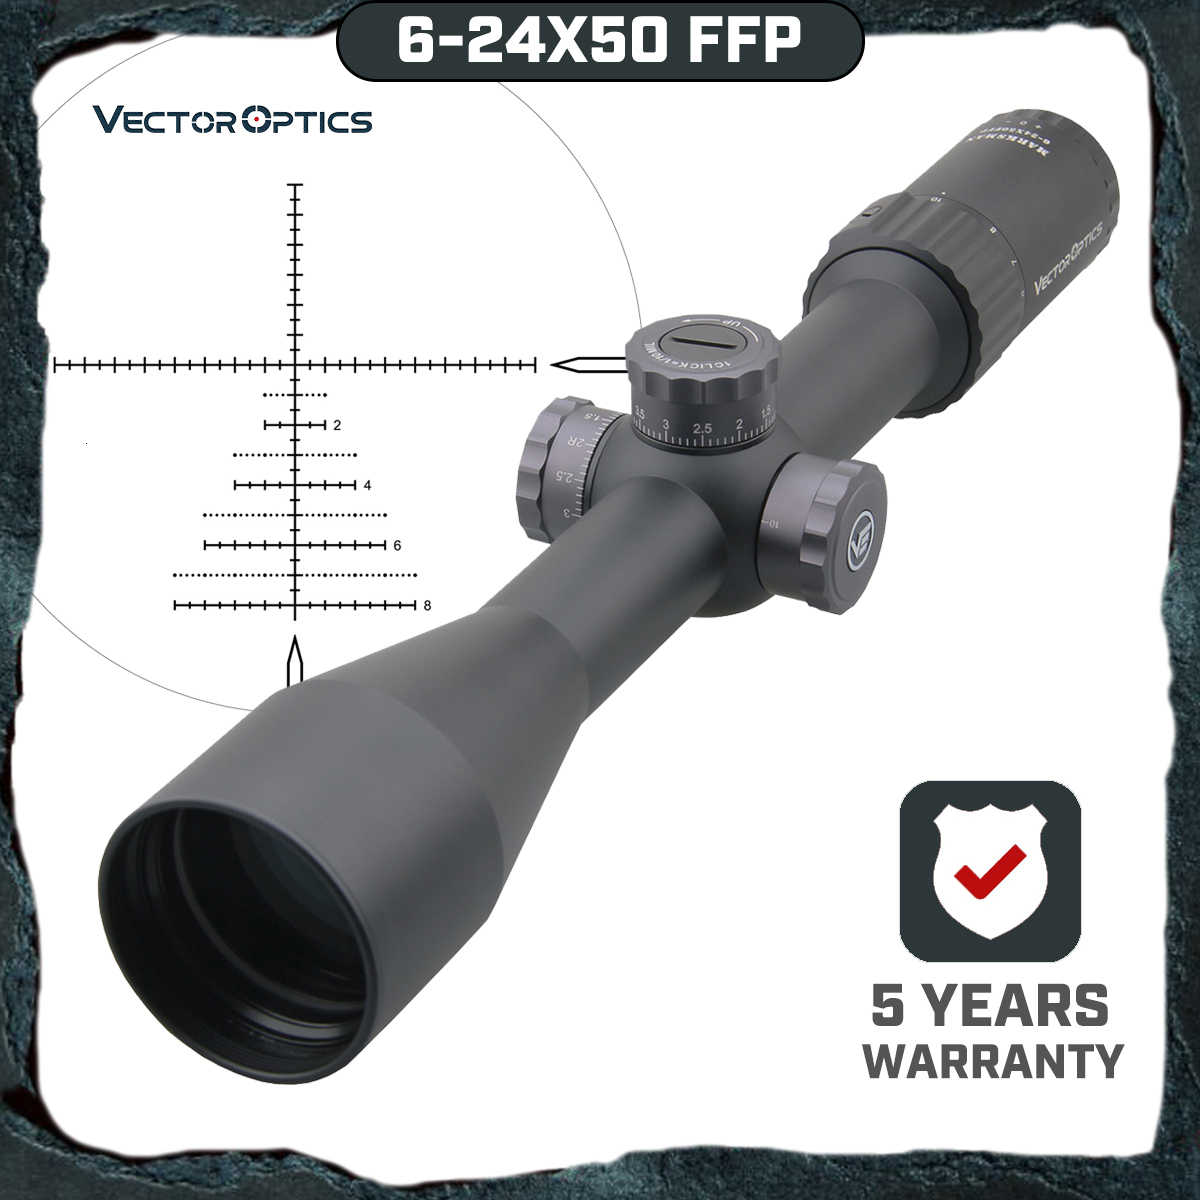 Vector Optics Marksman 6-24x50 Ffp Tactical Riflescope 1/10 Mil Min Focus 10 Yds Eerste Focal Plane Hunting Rifle Scope. 338 Lap